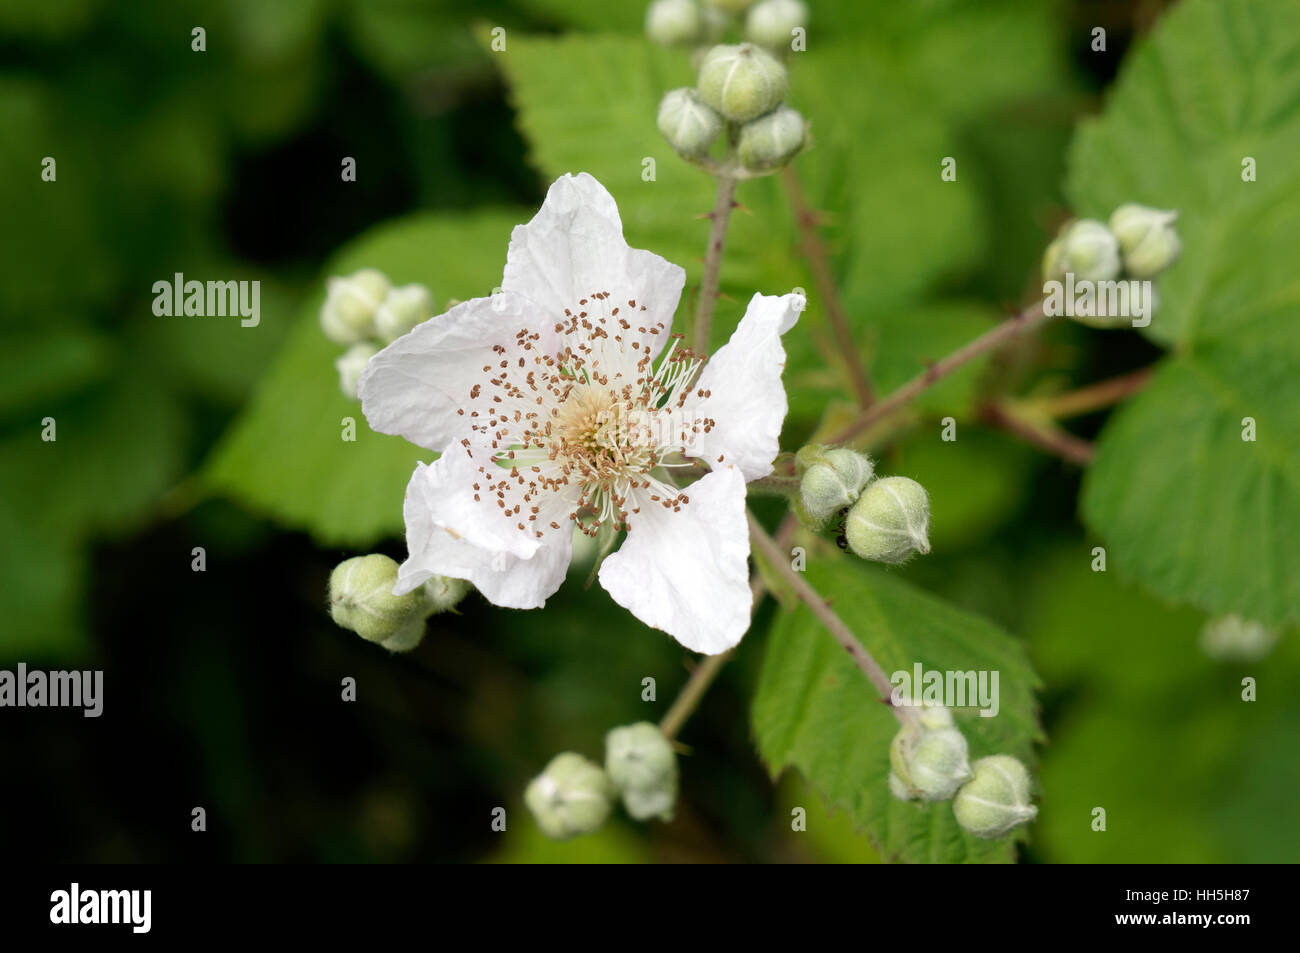 Close-up of a Himalayan Blackberry (Rubus discolor or Rubus ameniacus) wildflower, British Columbia, Canada - Stock Image